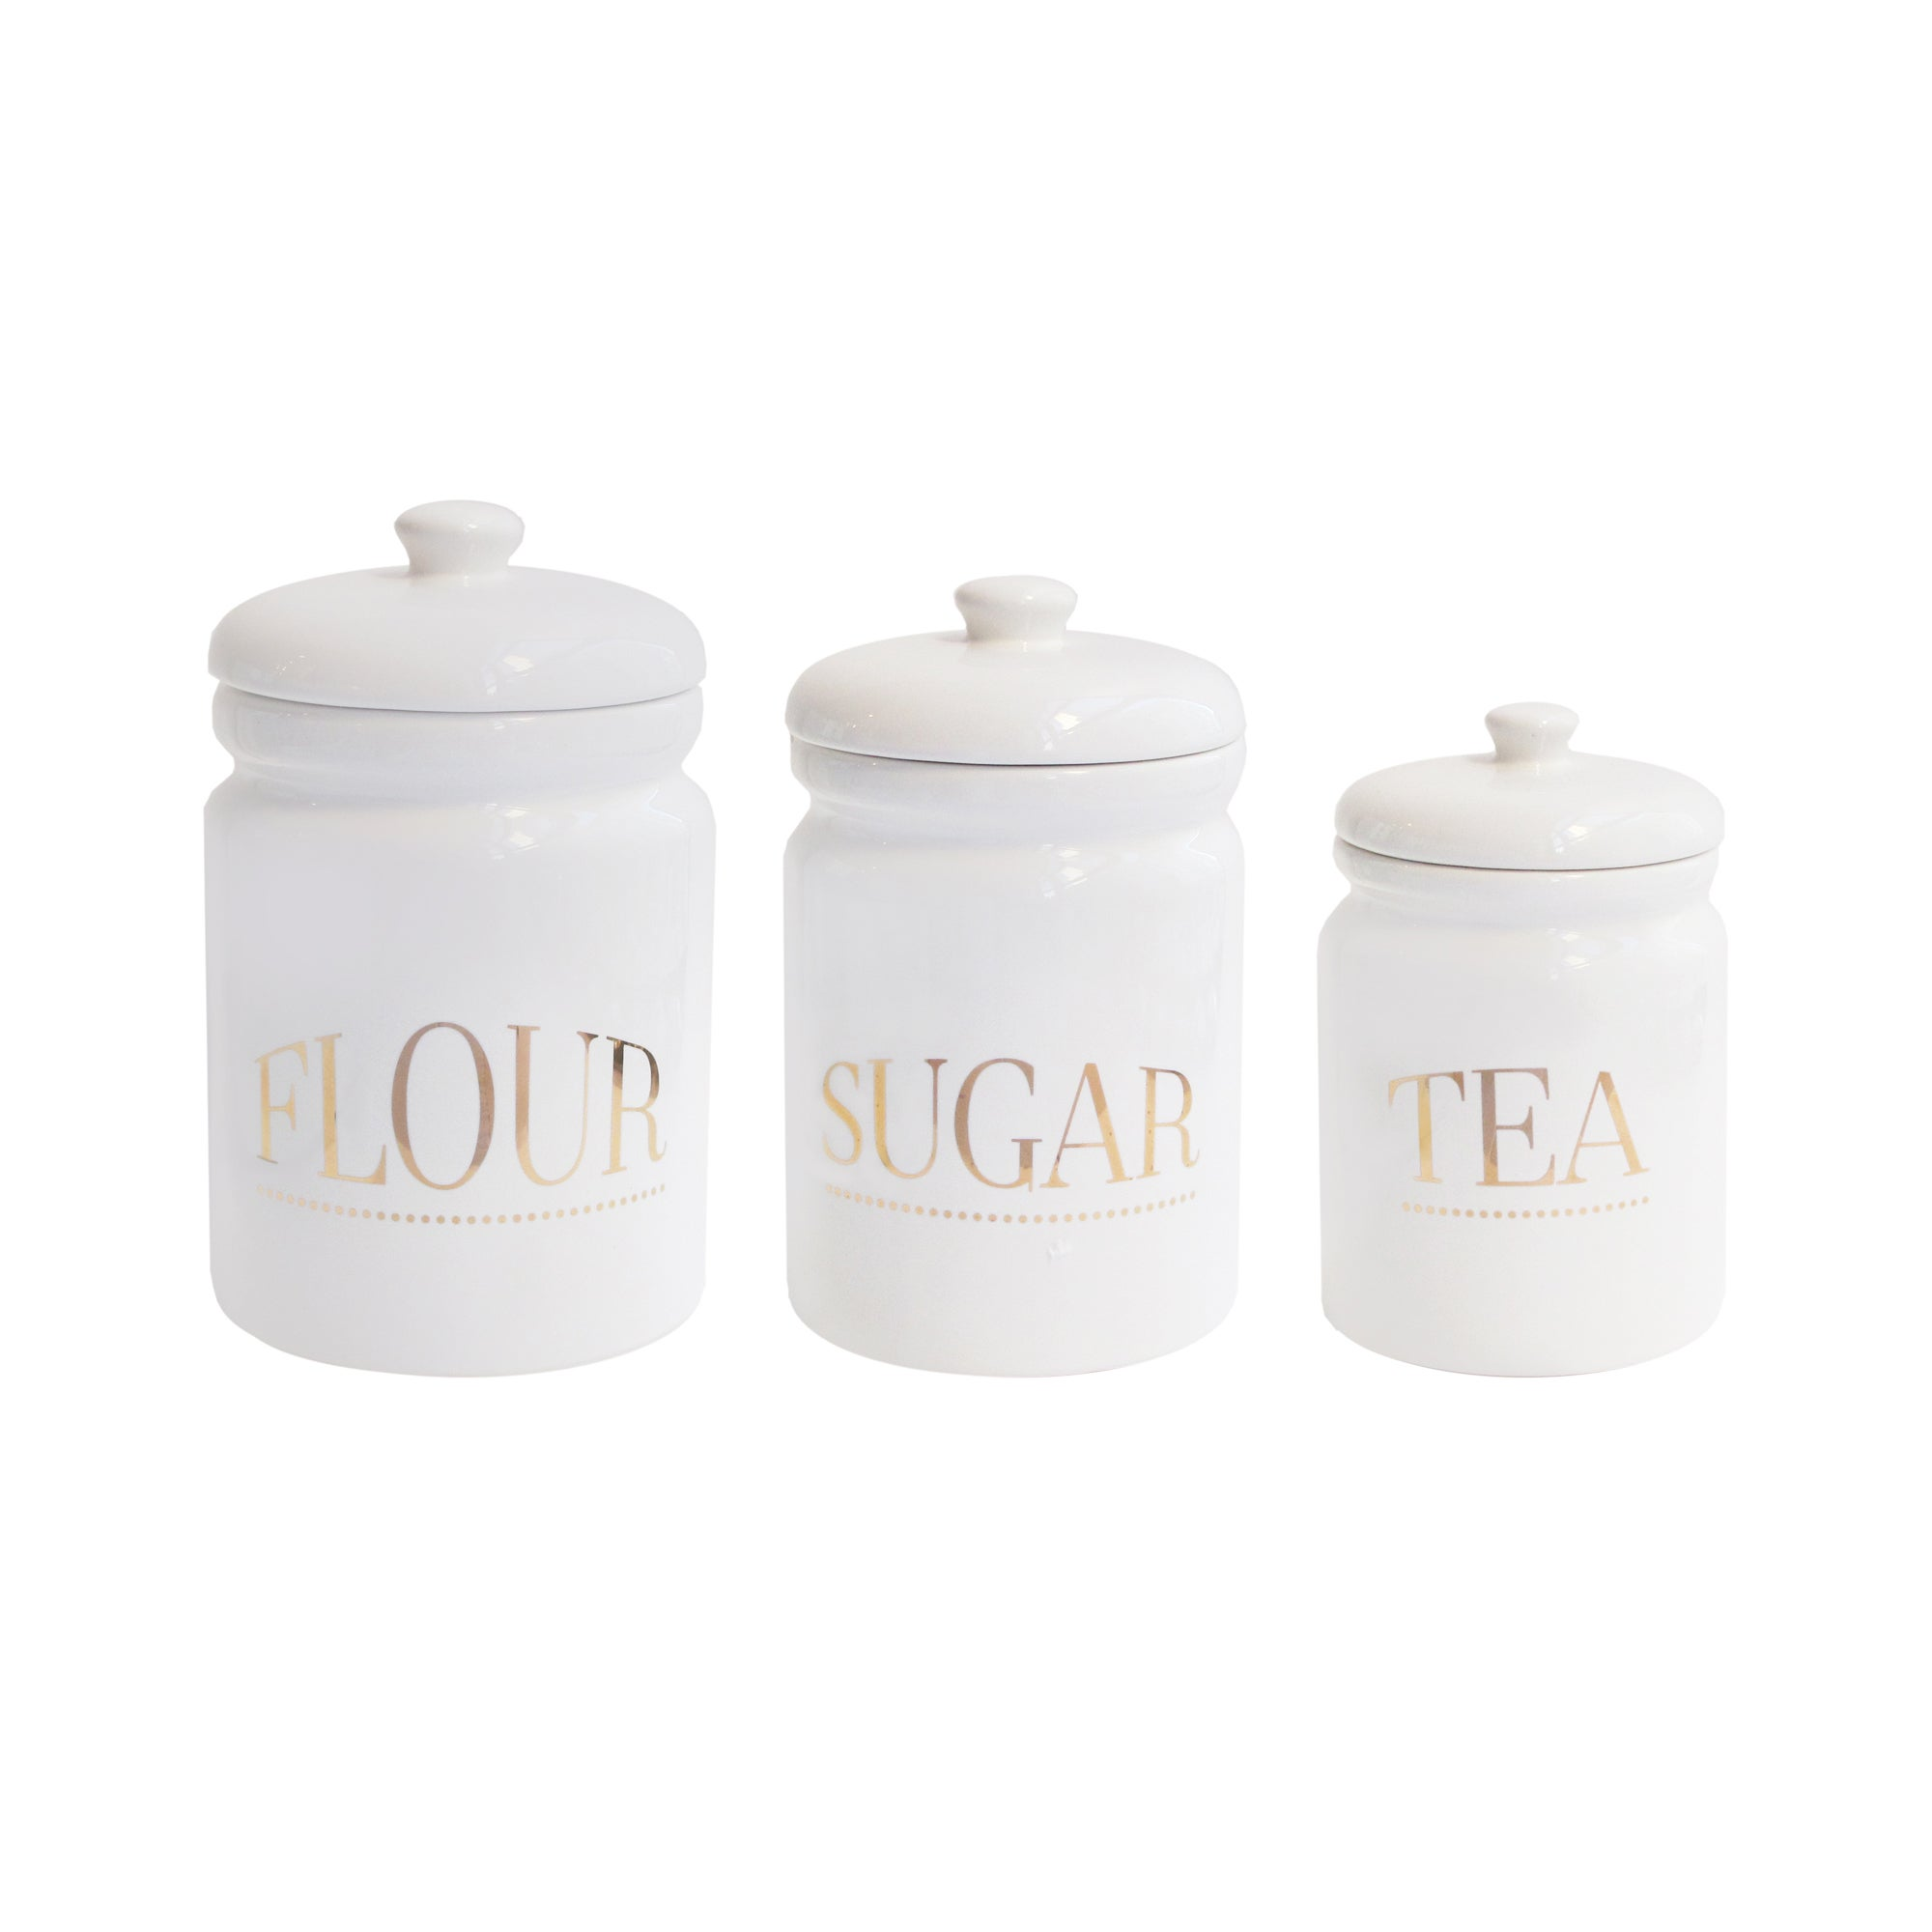 Pantry Canister Jar Lidded Kitchen Flour Sugar Tea Storage White ...